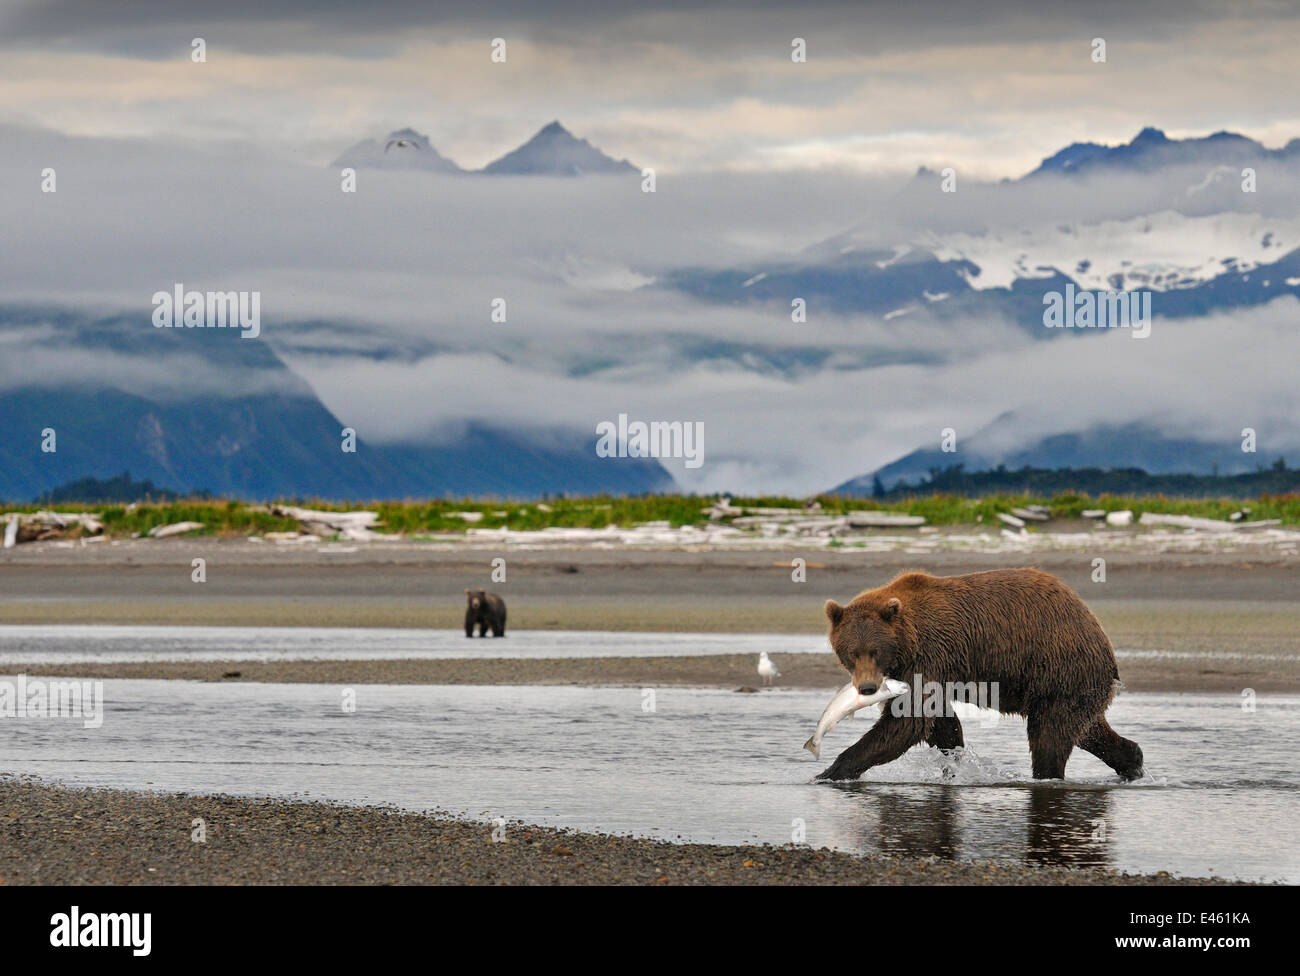 Grizzly Bear (Ursus arctos horribilis) with caught salmon, another bear more distant, with mountains backing the - Stock Image